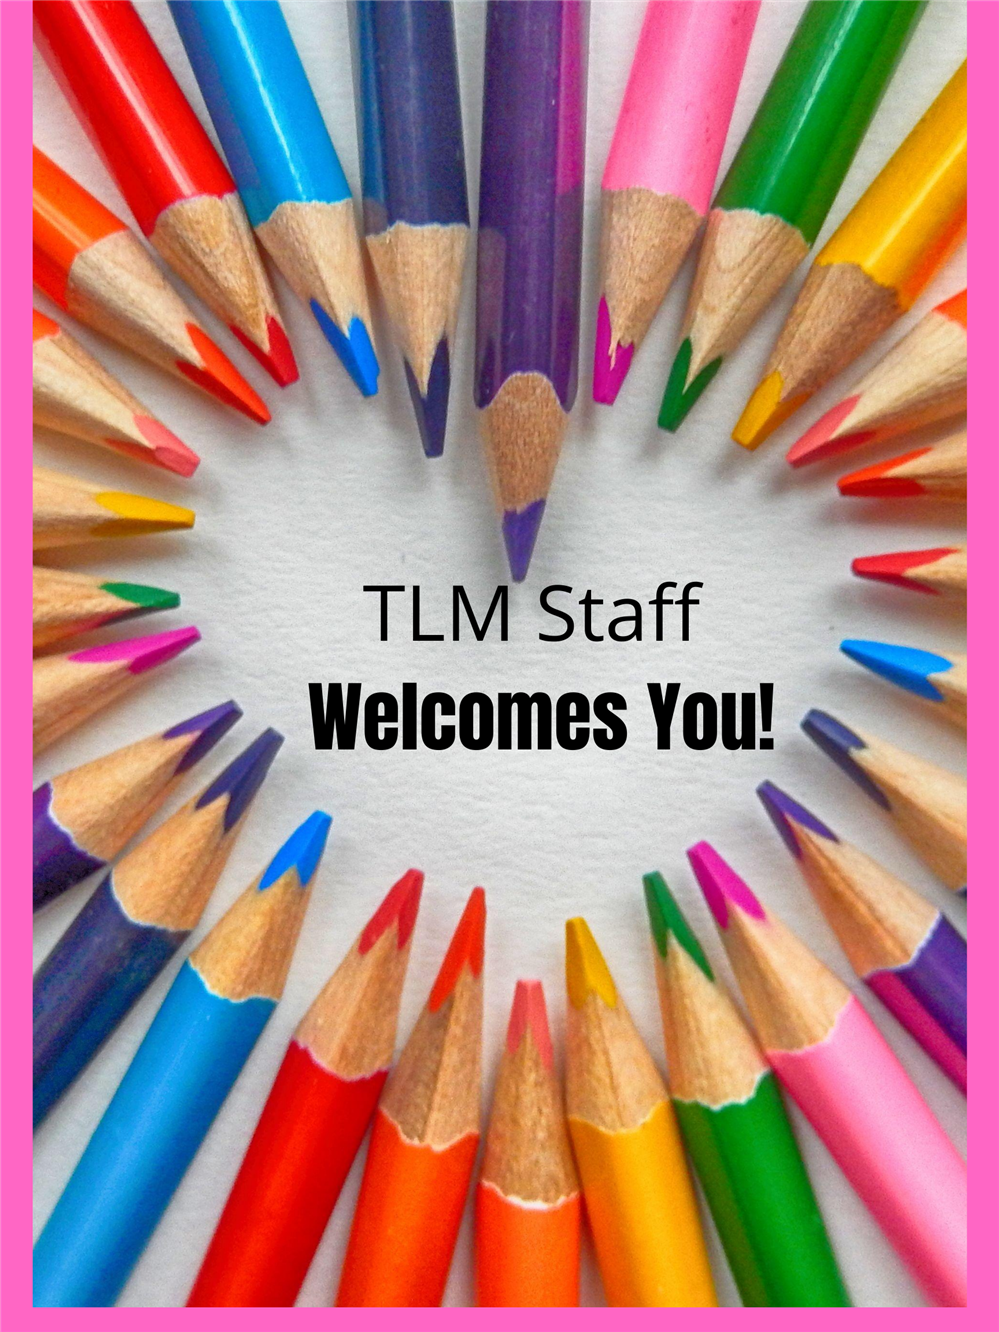 Welcome Message from Staff